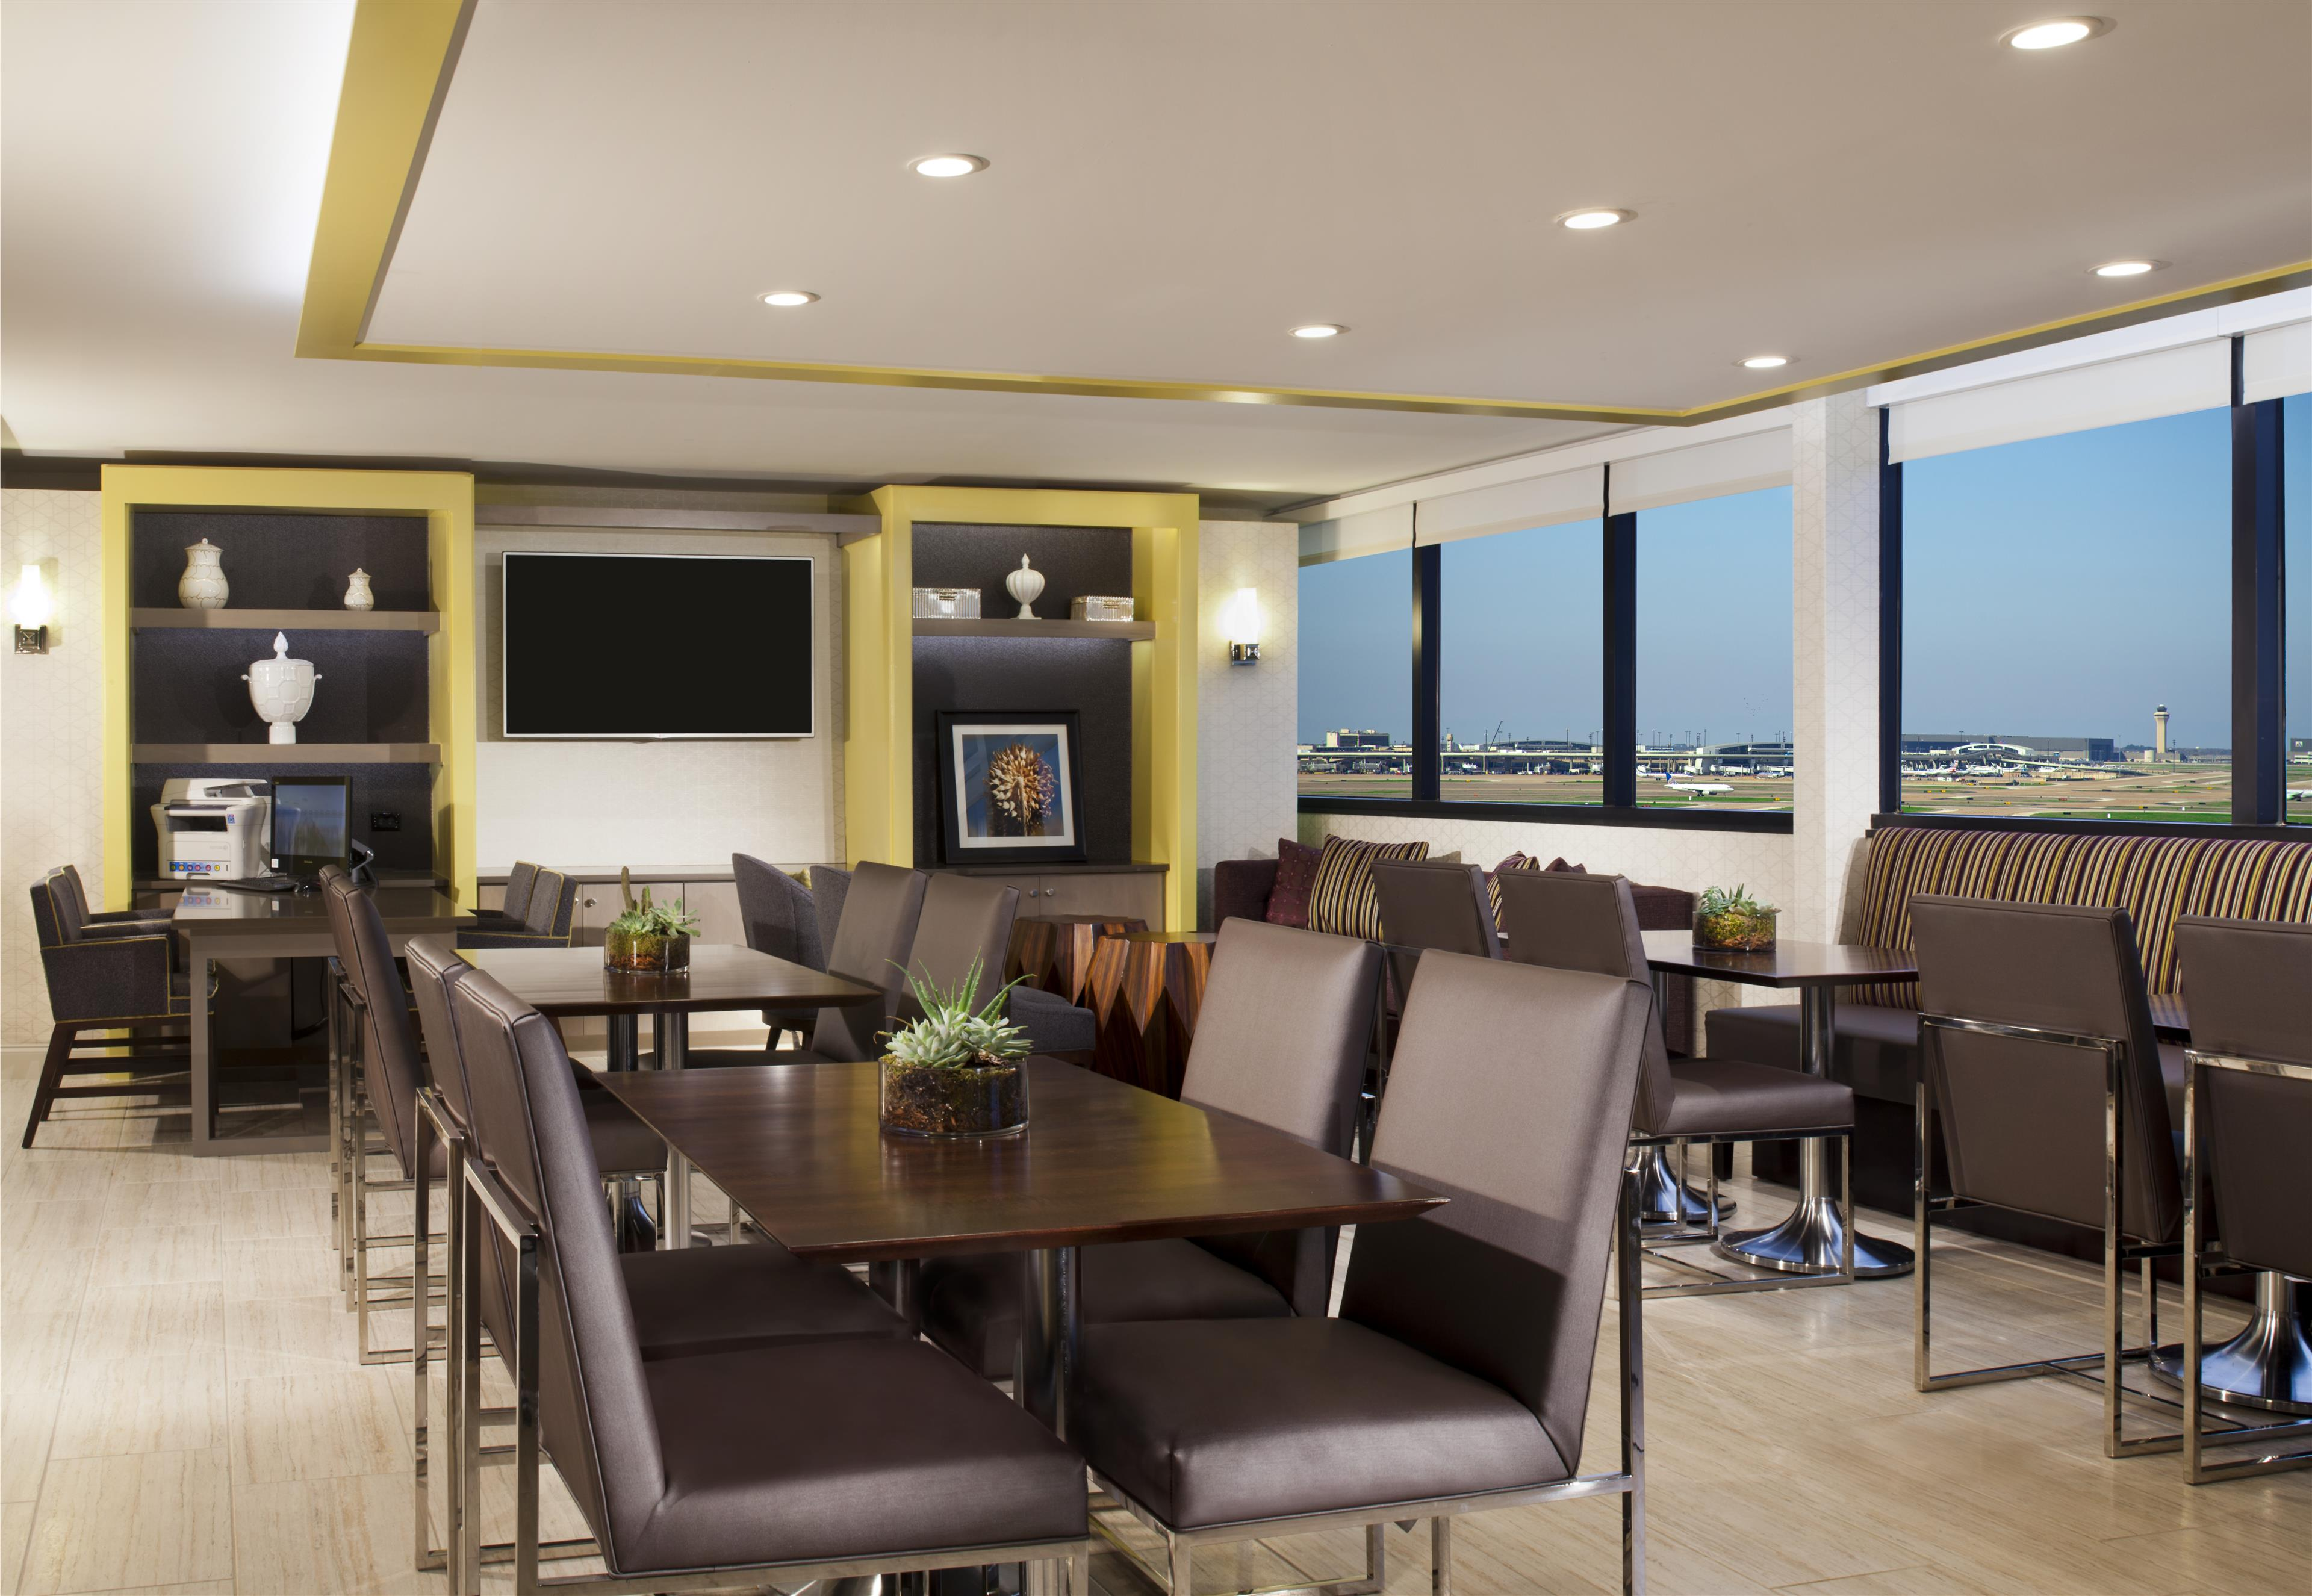 Sheraton dfw airport hotel in irving tx whitepages for Irving hotel chicago